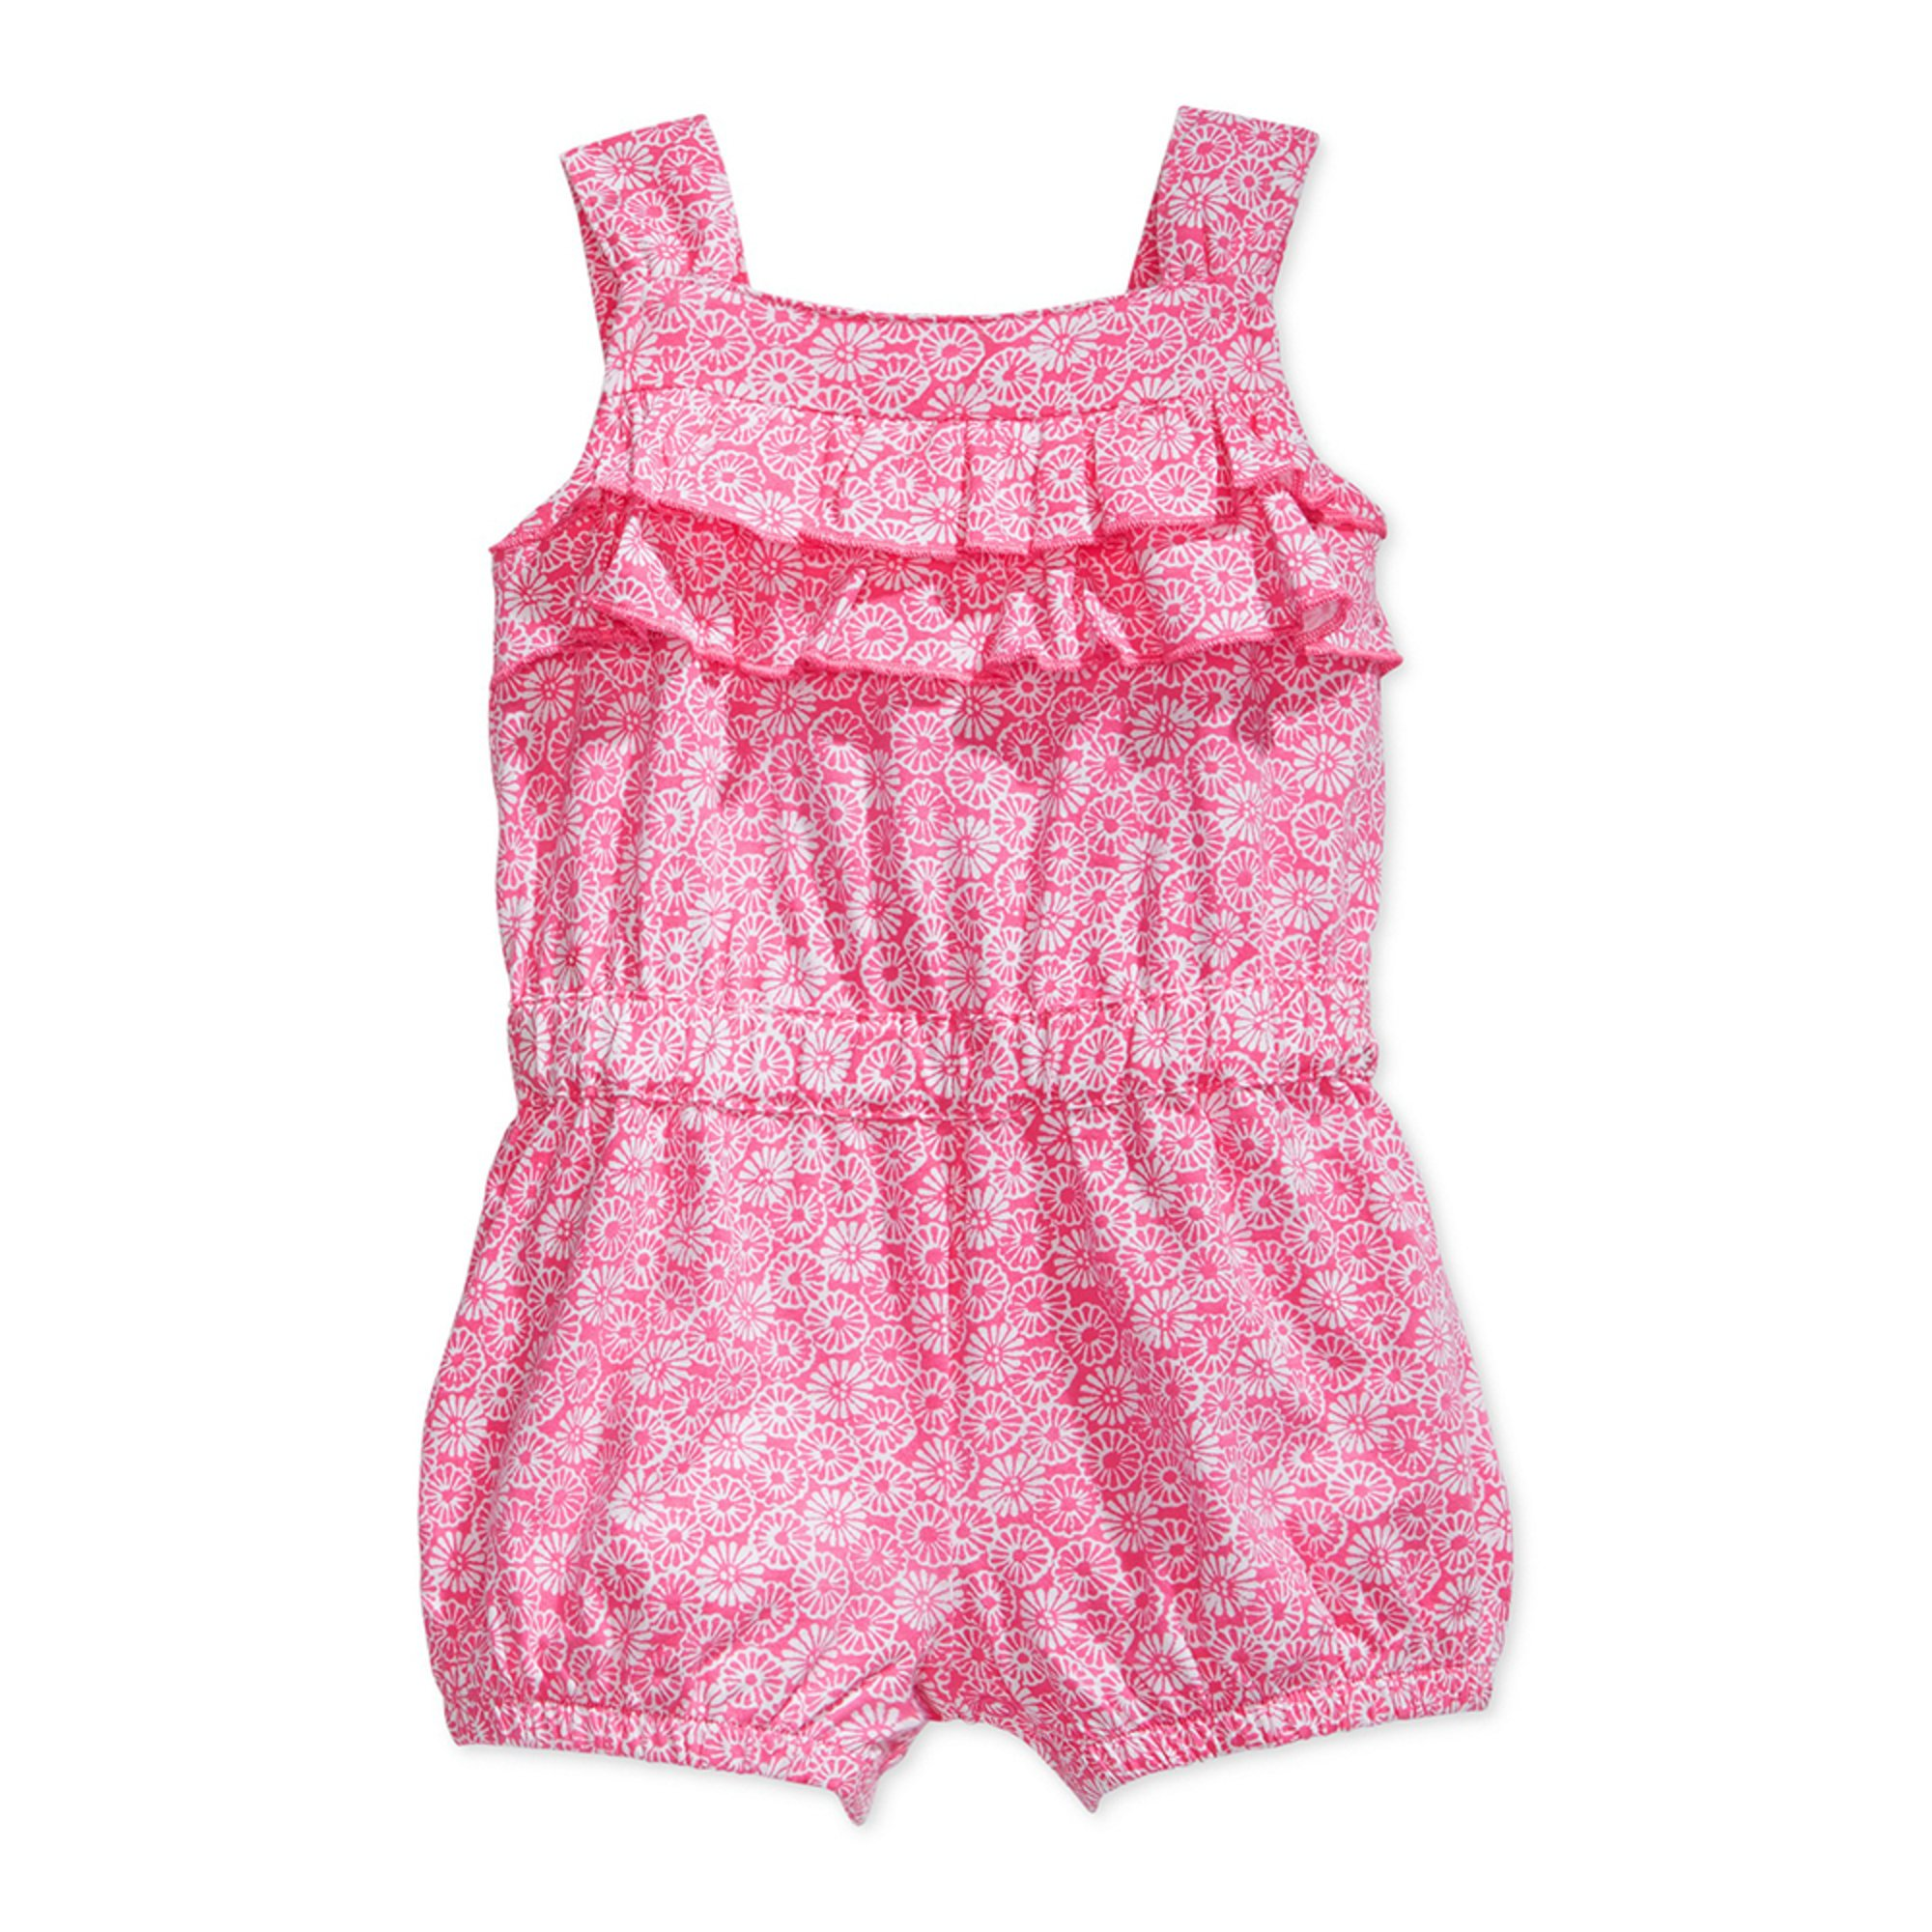 Sale Sale Sale! Baby SuperMall is offering hundreds of articles of baby clothing at a discounted price. Use our unique Clearance Baby Clothing Finder below to browse by brand, gender, size, department, discount or any mix of search options.